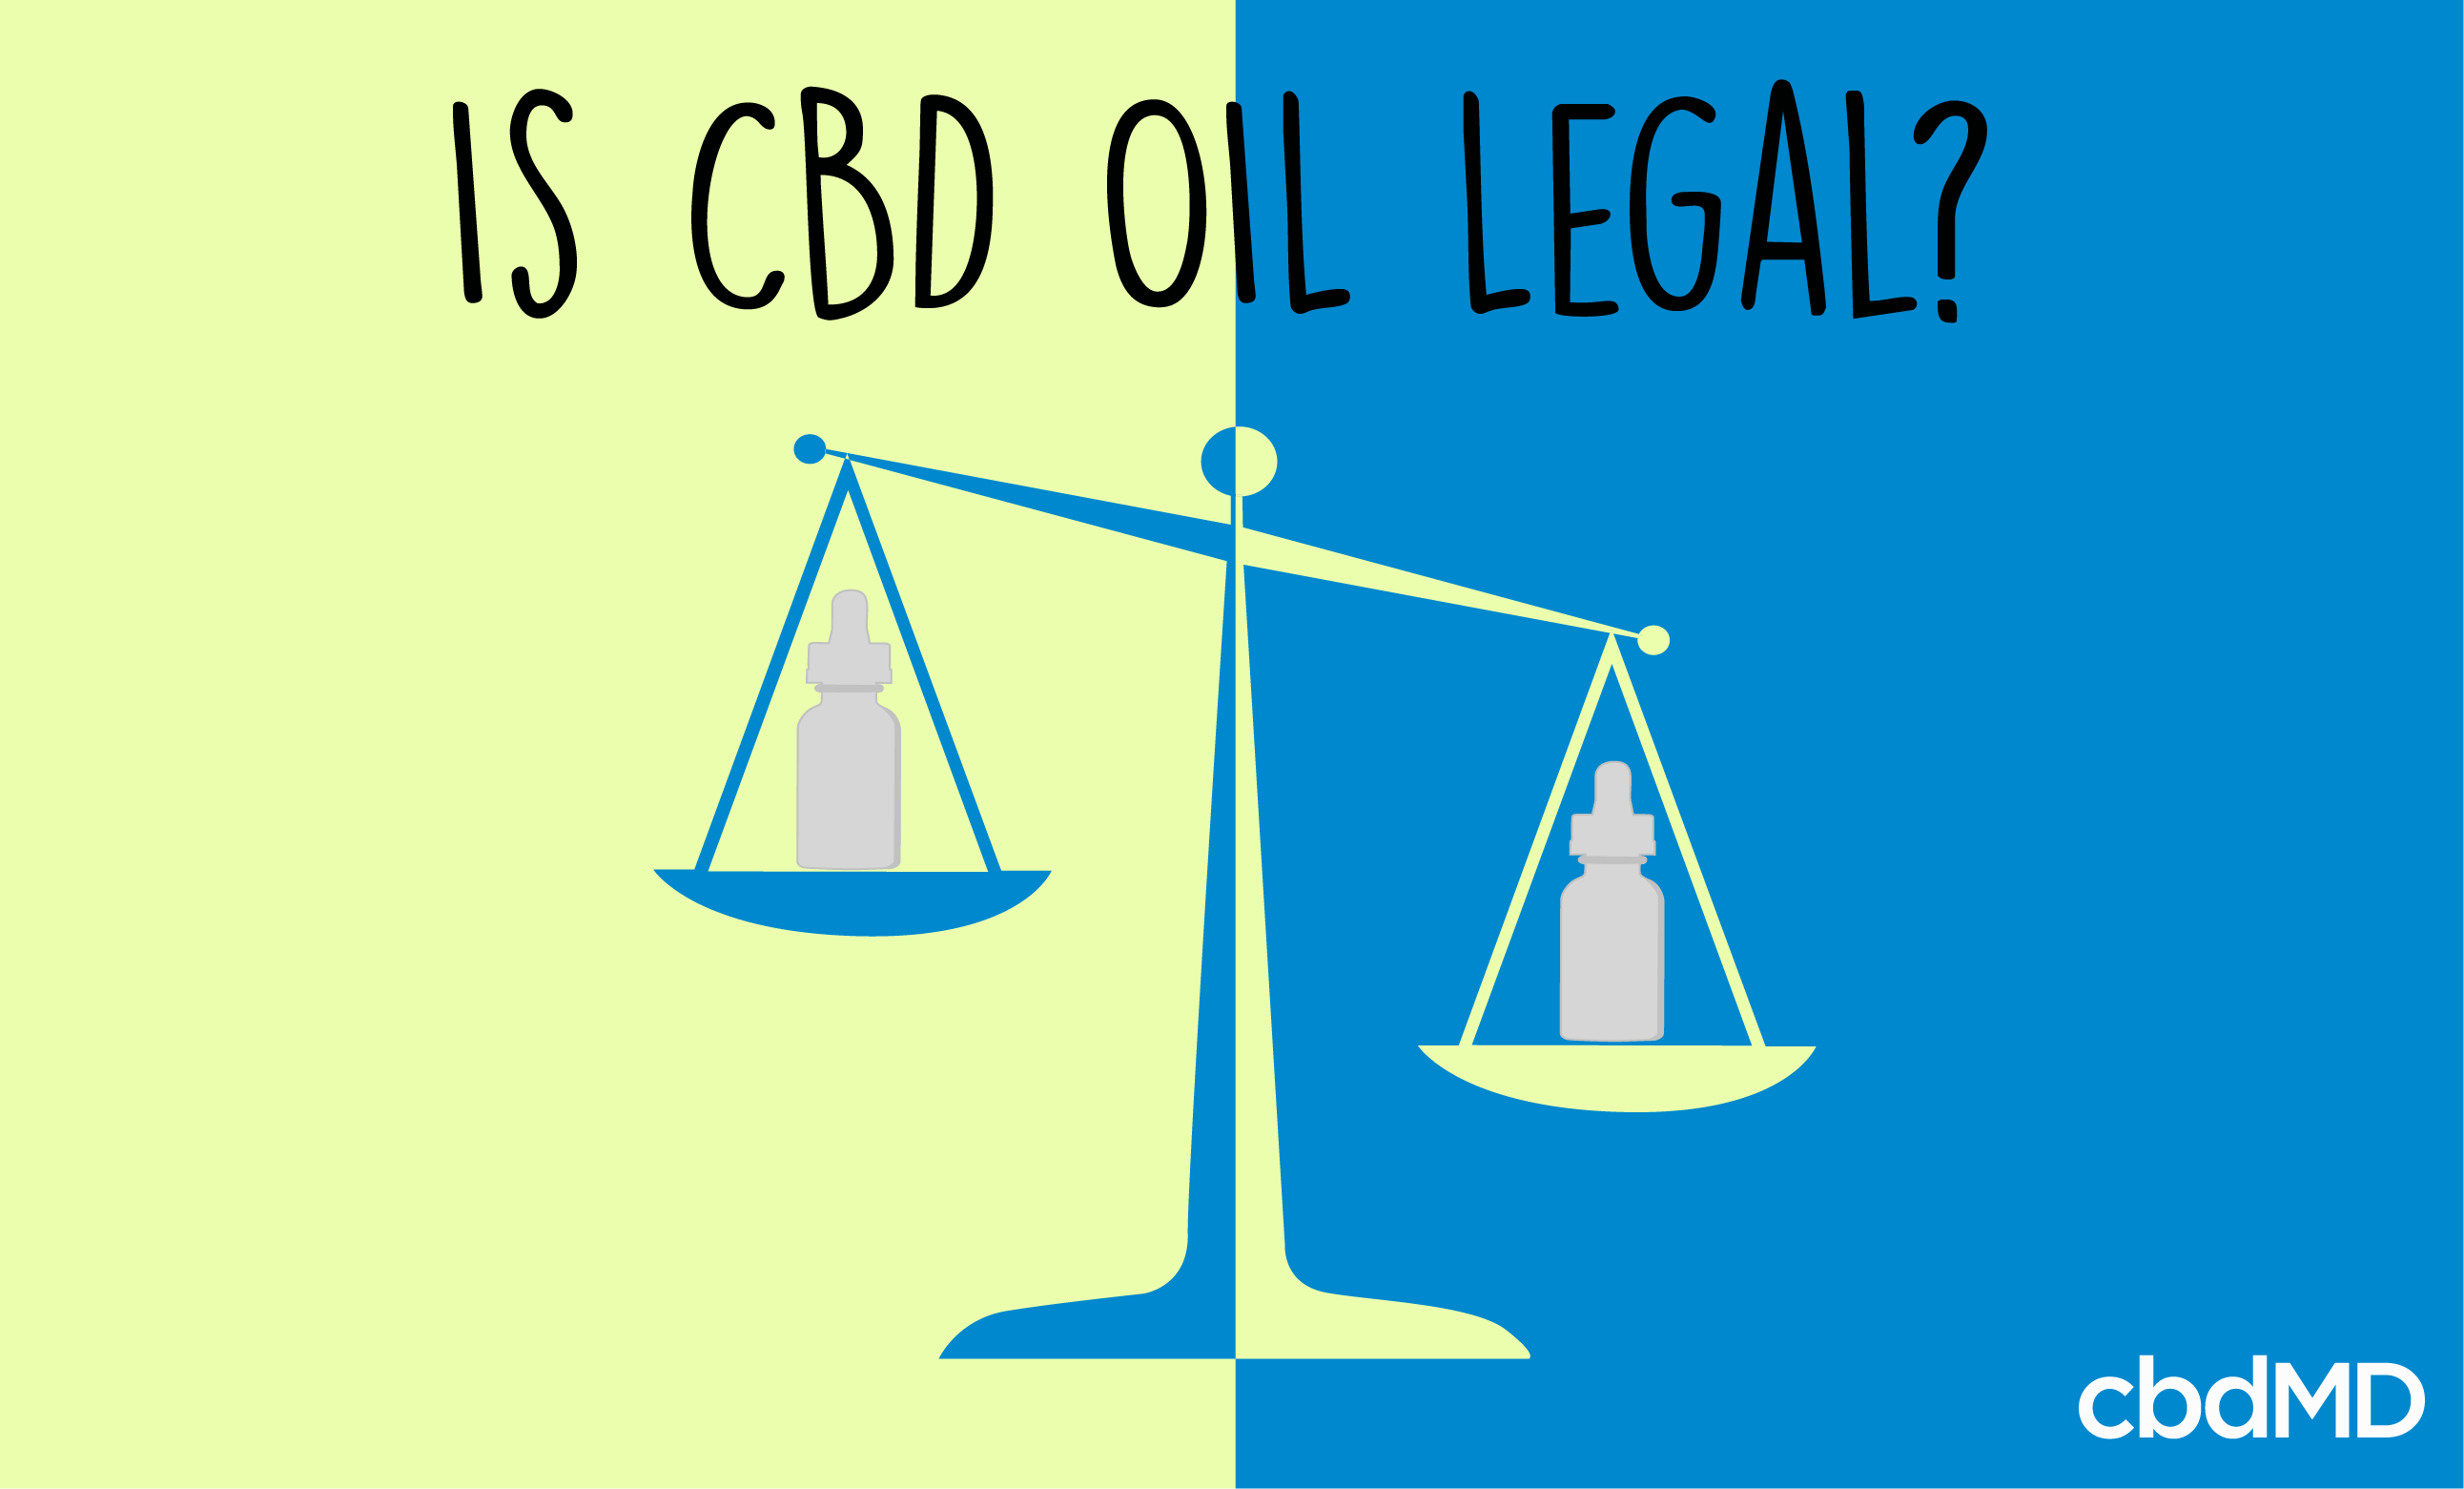 The Legal Status of CBD Oil